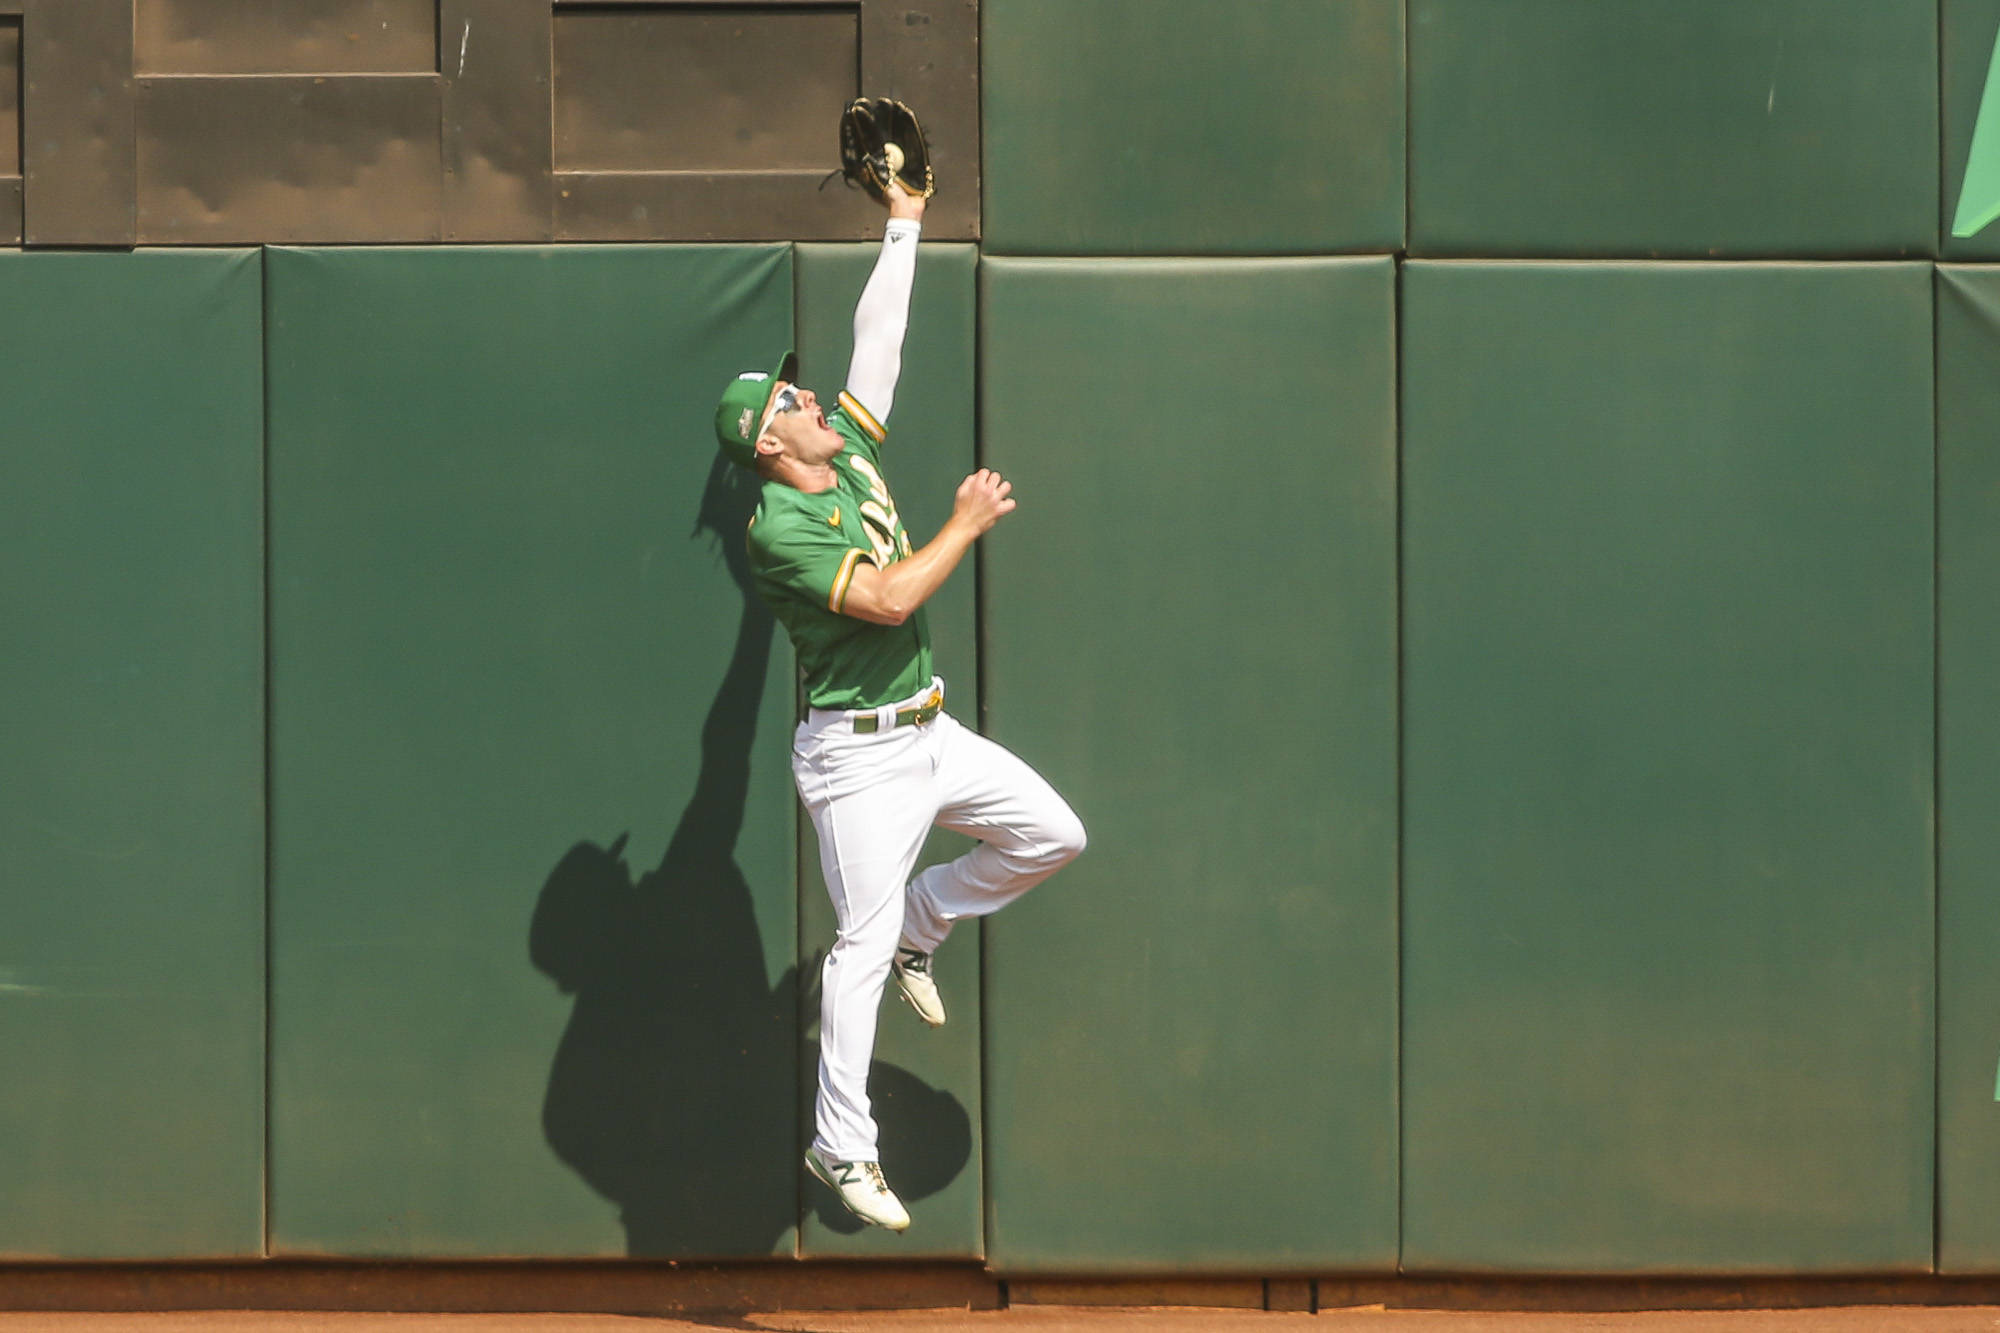 Mark Canha (pictured in Oakland in Game 2 of the AL Wild Card Series against the Chicago White Sox on Sept. 30) will be back, playing outfield. (Chris Victorio/Special to S.F. Examiner)